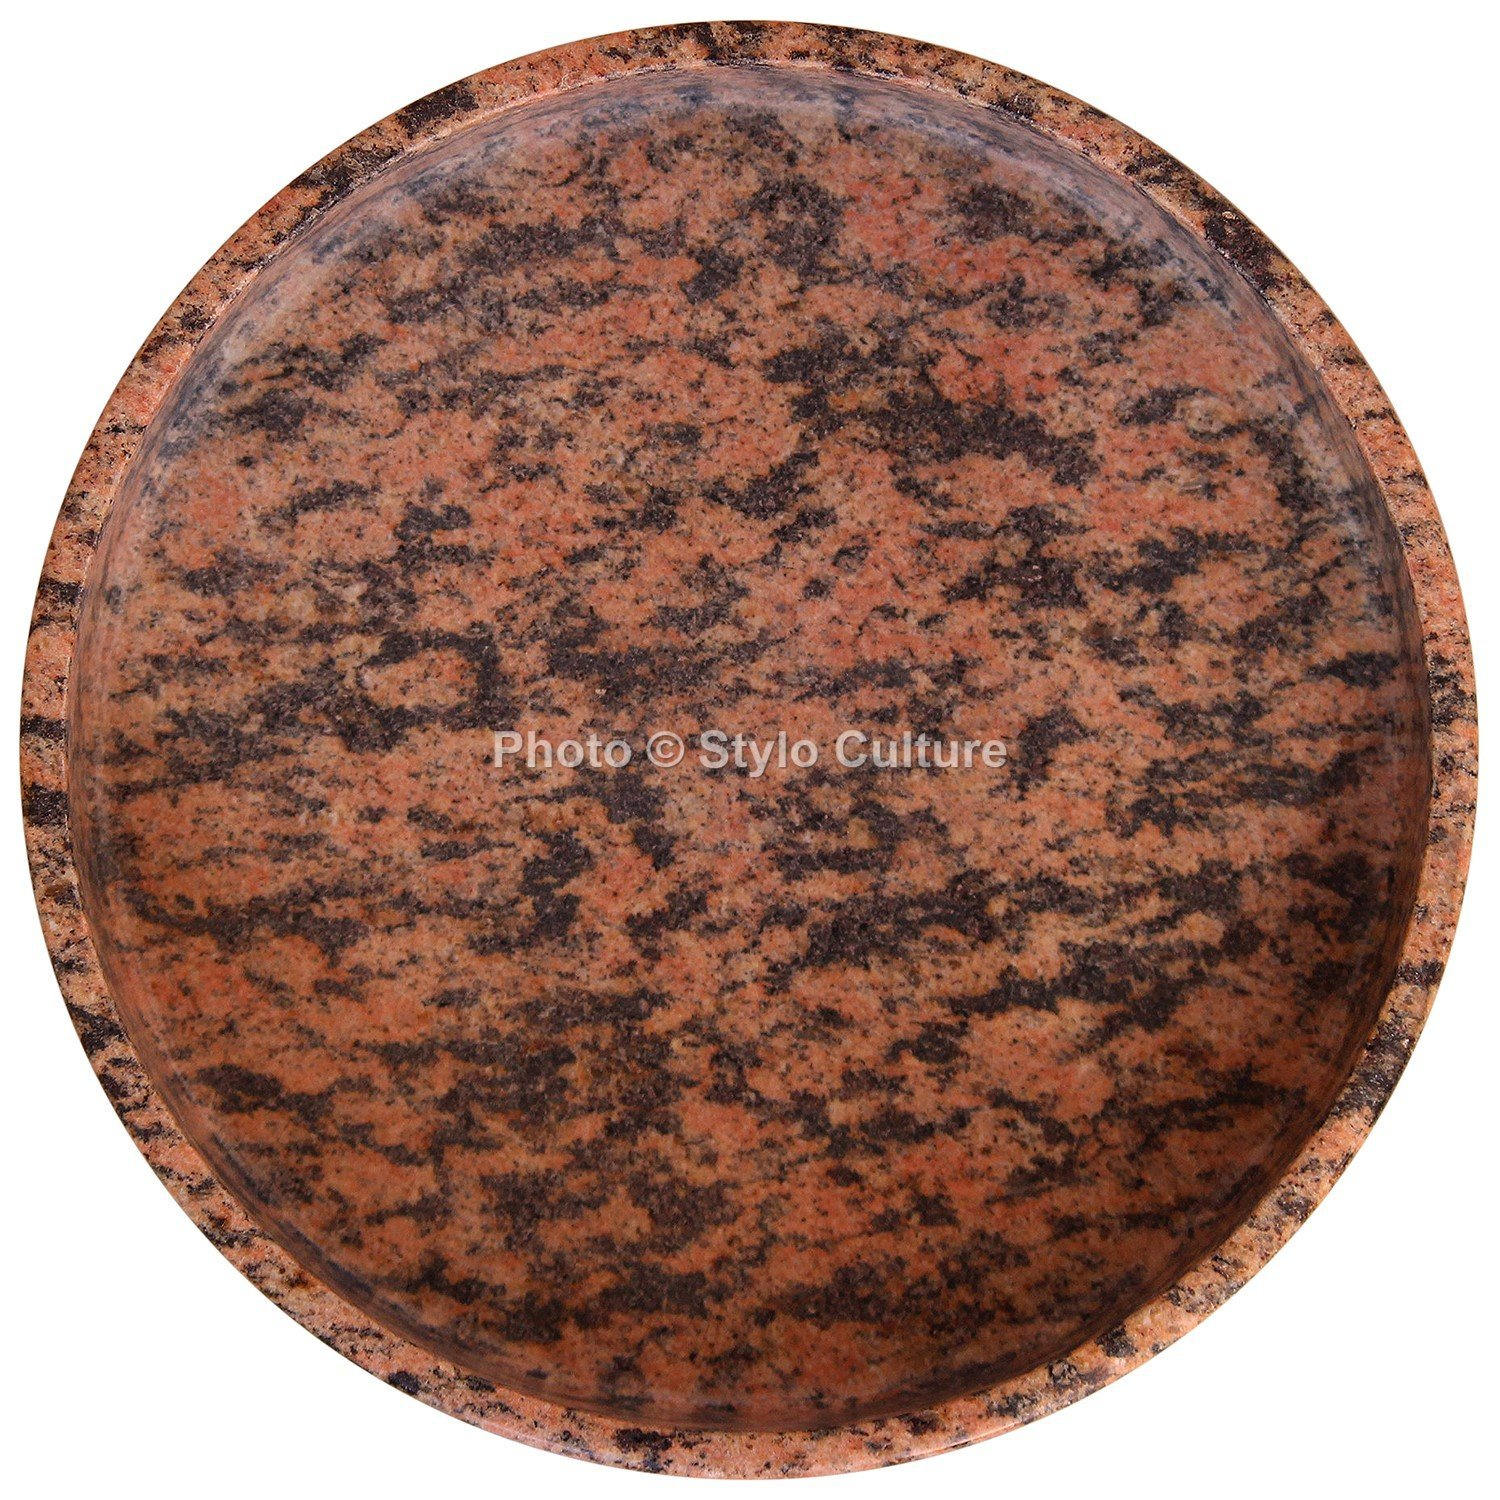 Stylo Culture Round Red Granite Stone Tray Unjoined Piece Petite Multipurpose Utility Bathroom Vanity Tray Scented Candle Base Perfume Tray Soap Bar Tray (4x20 cm) By